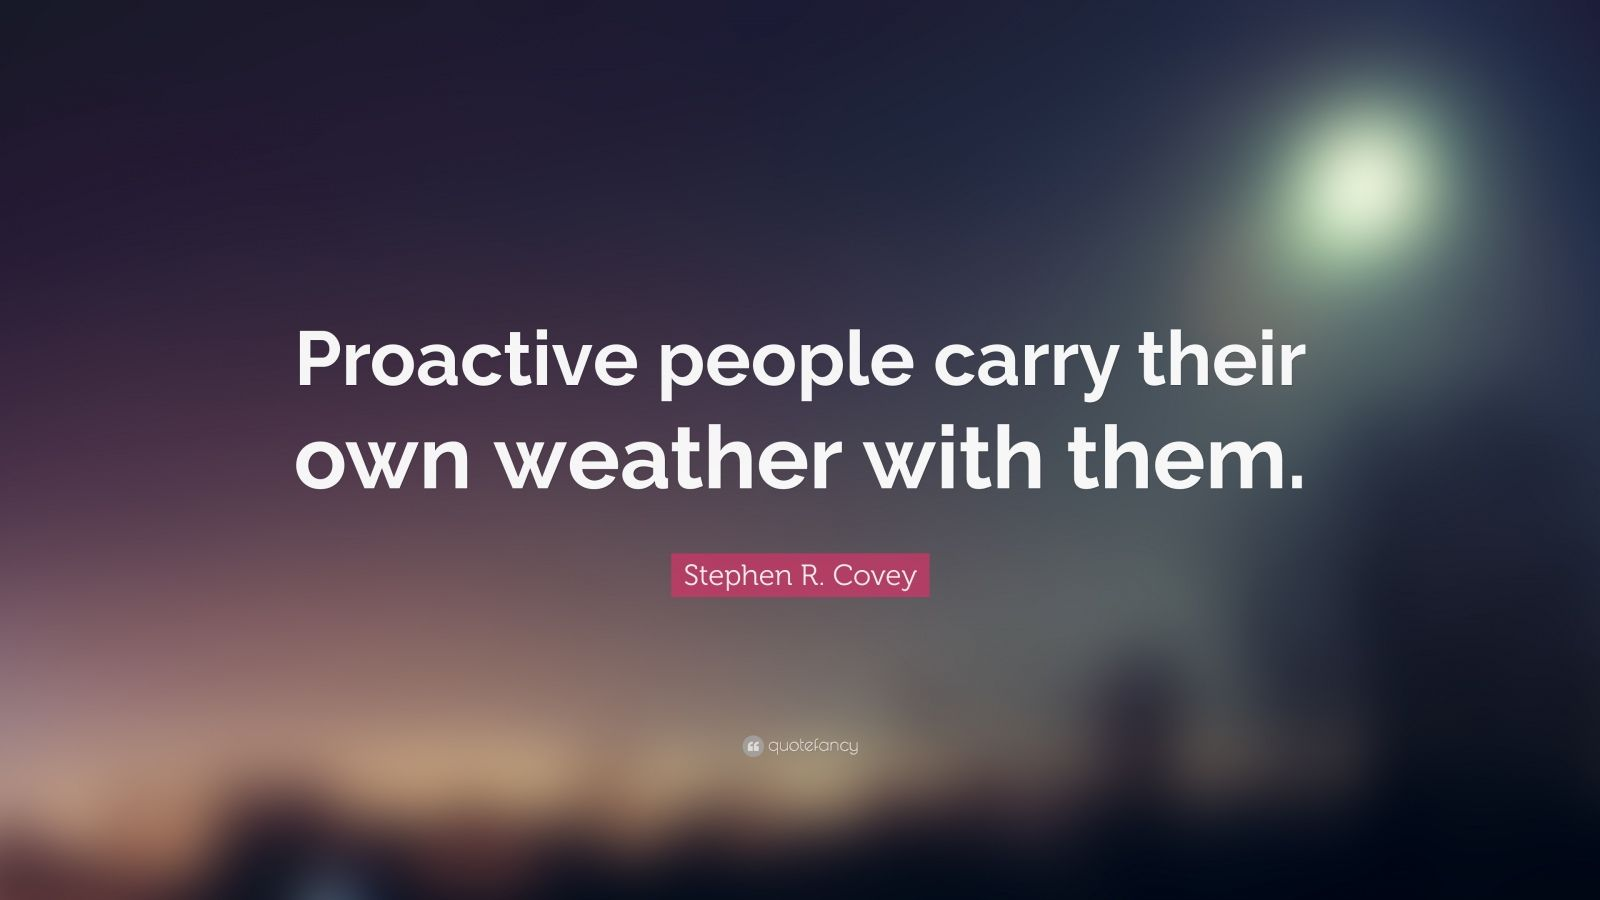 Fall Of Quotations Wallpapers Stephen R Covey Quote Proactive People Carry Their Own